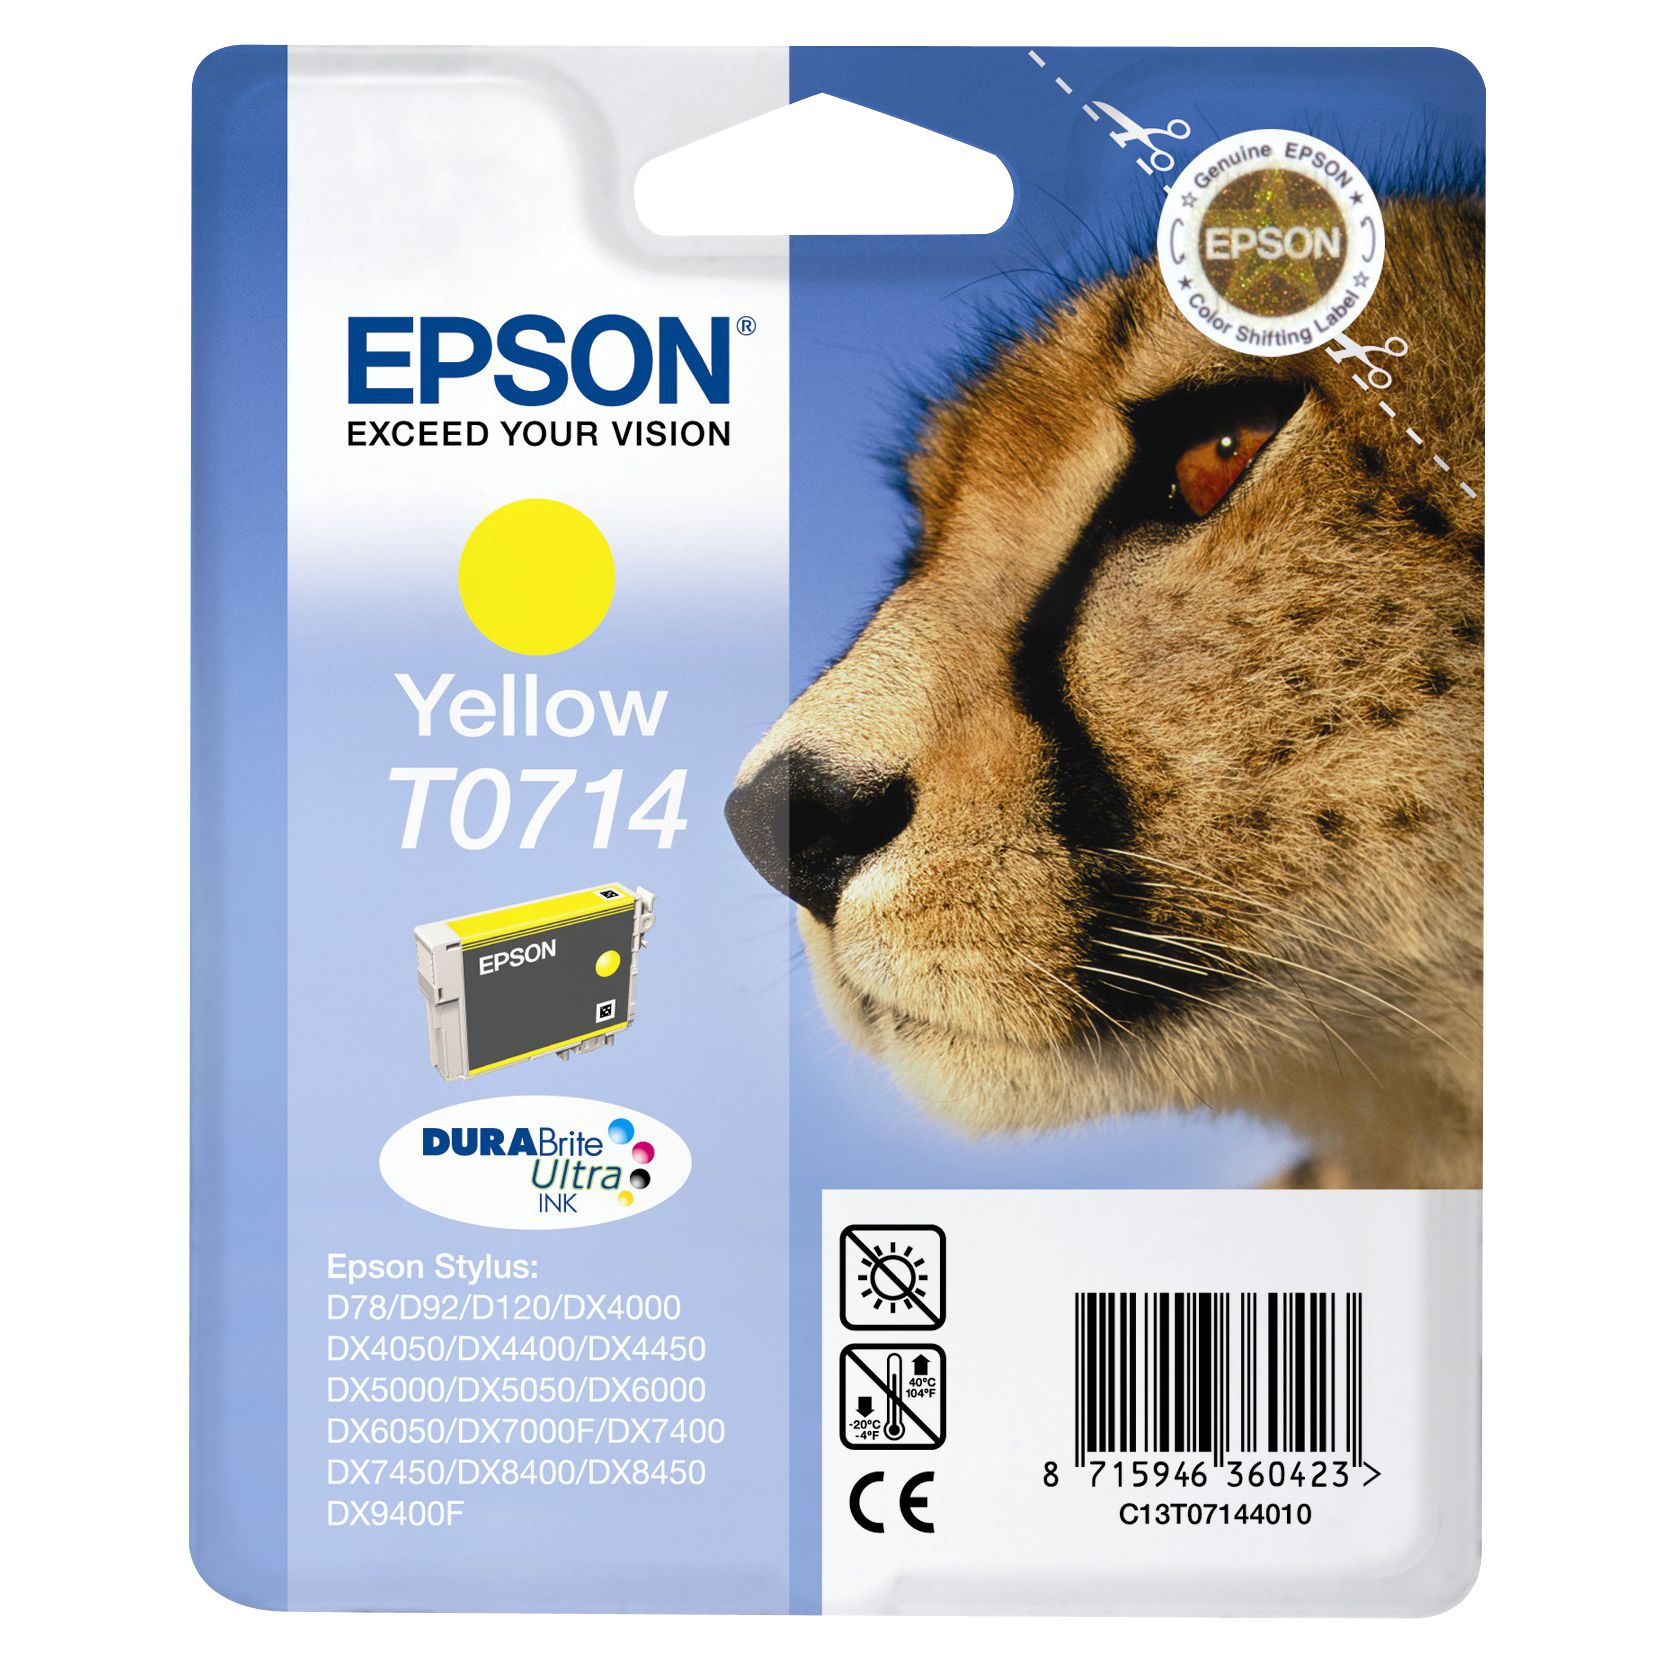 Inkjet Printer Cartridge, Yellow, T0714